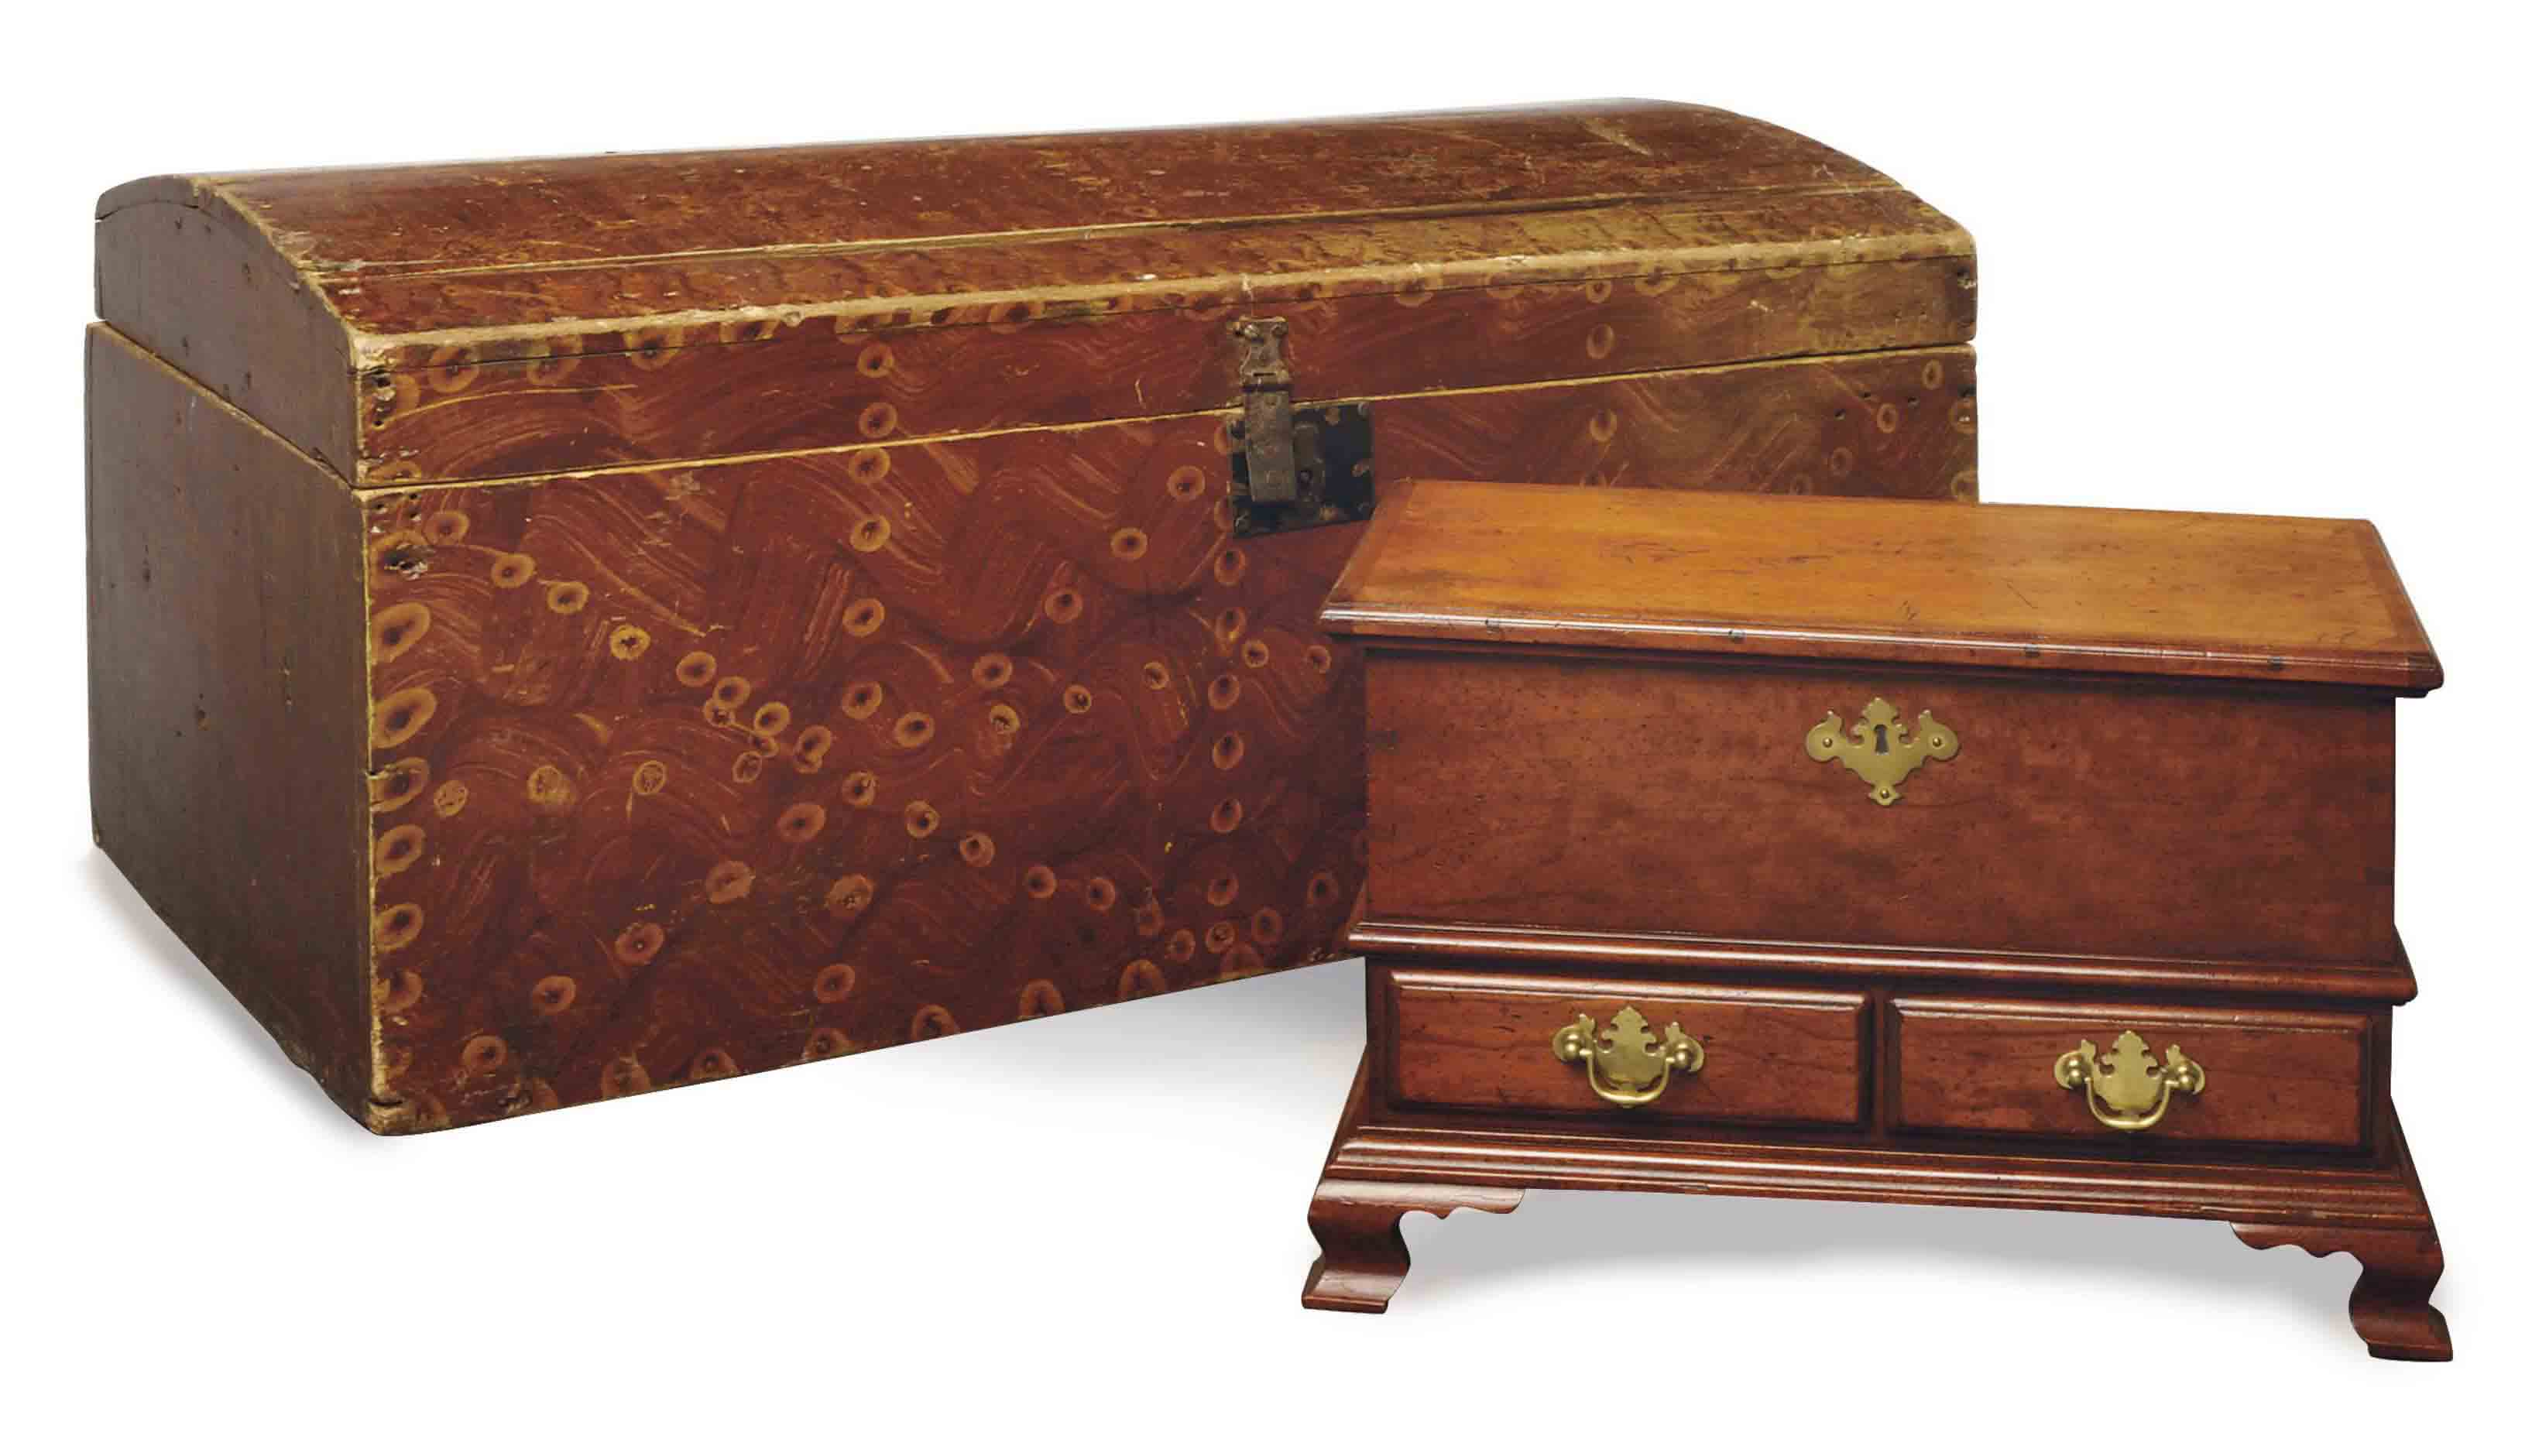 A 'BIRDS-EYE MAPLE' GRAIN-PAINTED DOME TOP TRUNK,